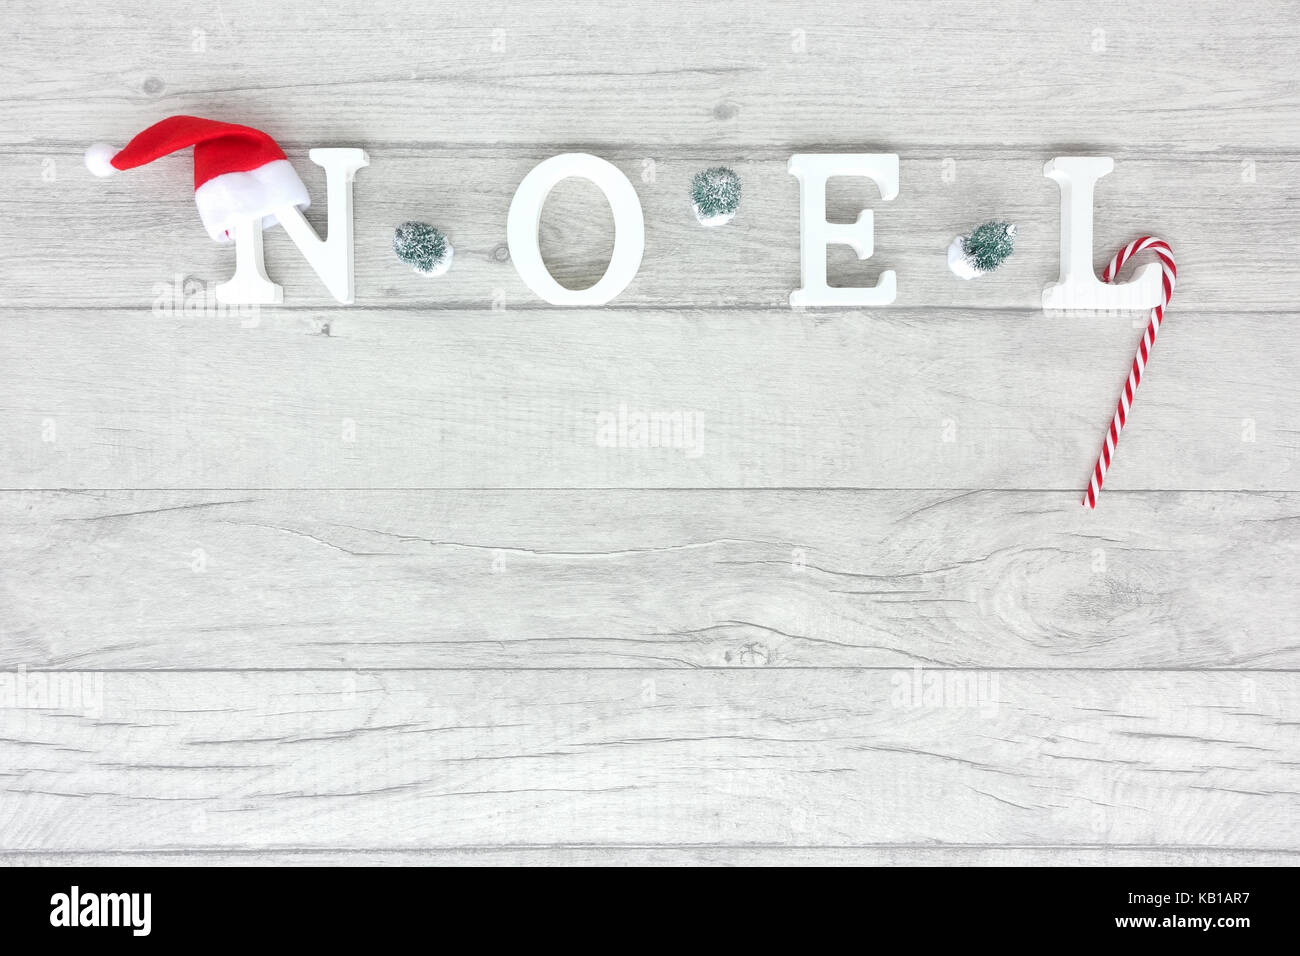 Christmas background with the words noel formed out of white wooden capital letters on grey wood background. - Stock Image